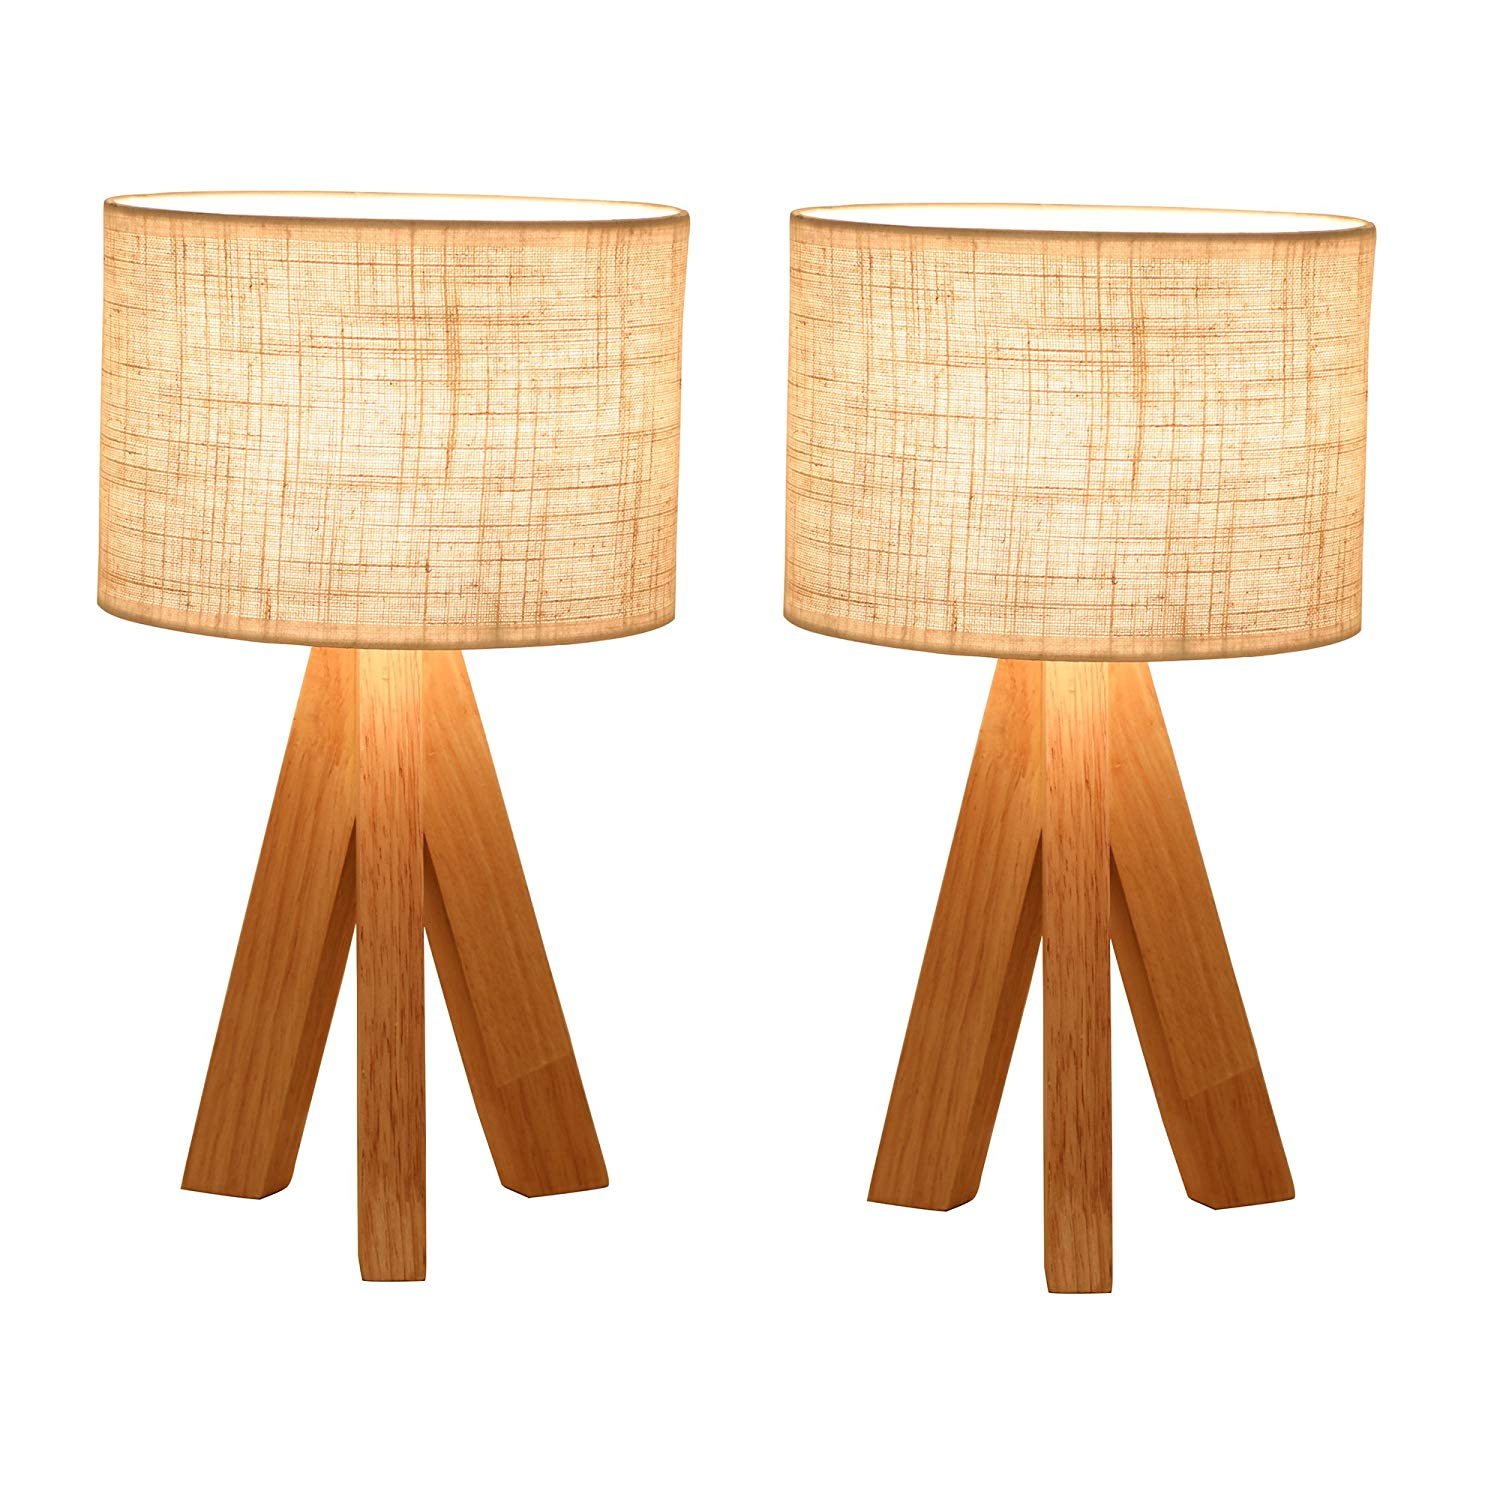 Cheap Table Lamps For Living Room Uk Find Table Lamps For